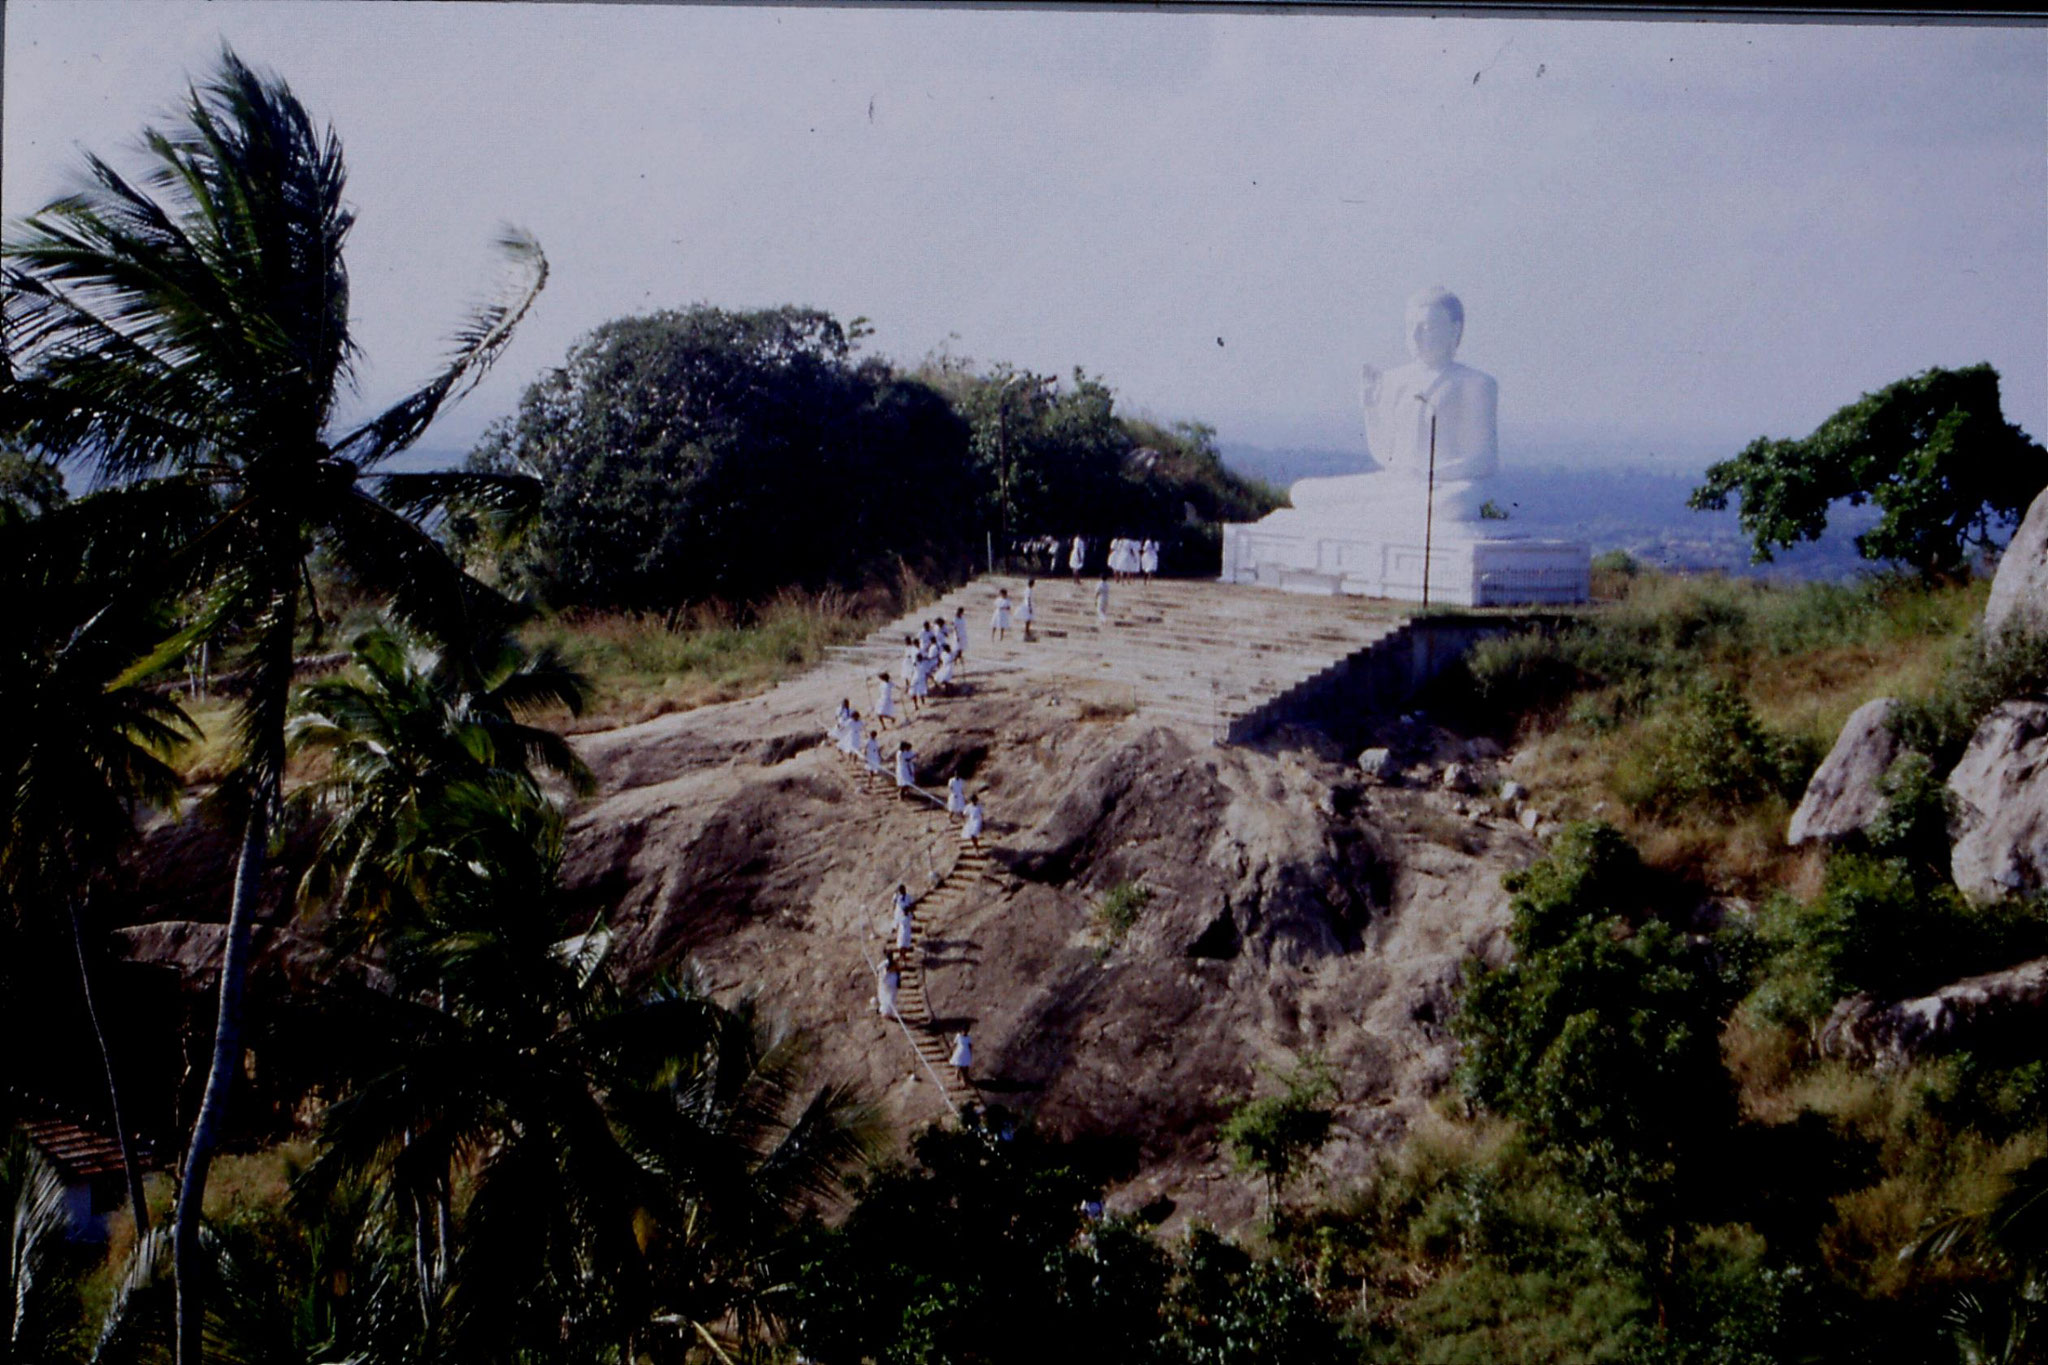 103/3: 8/2/1990 Buddha statue and school girls at Mihintale